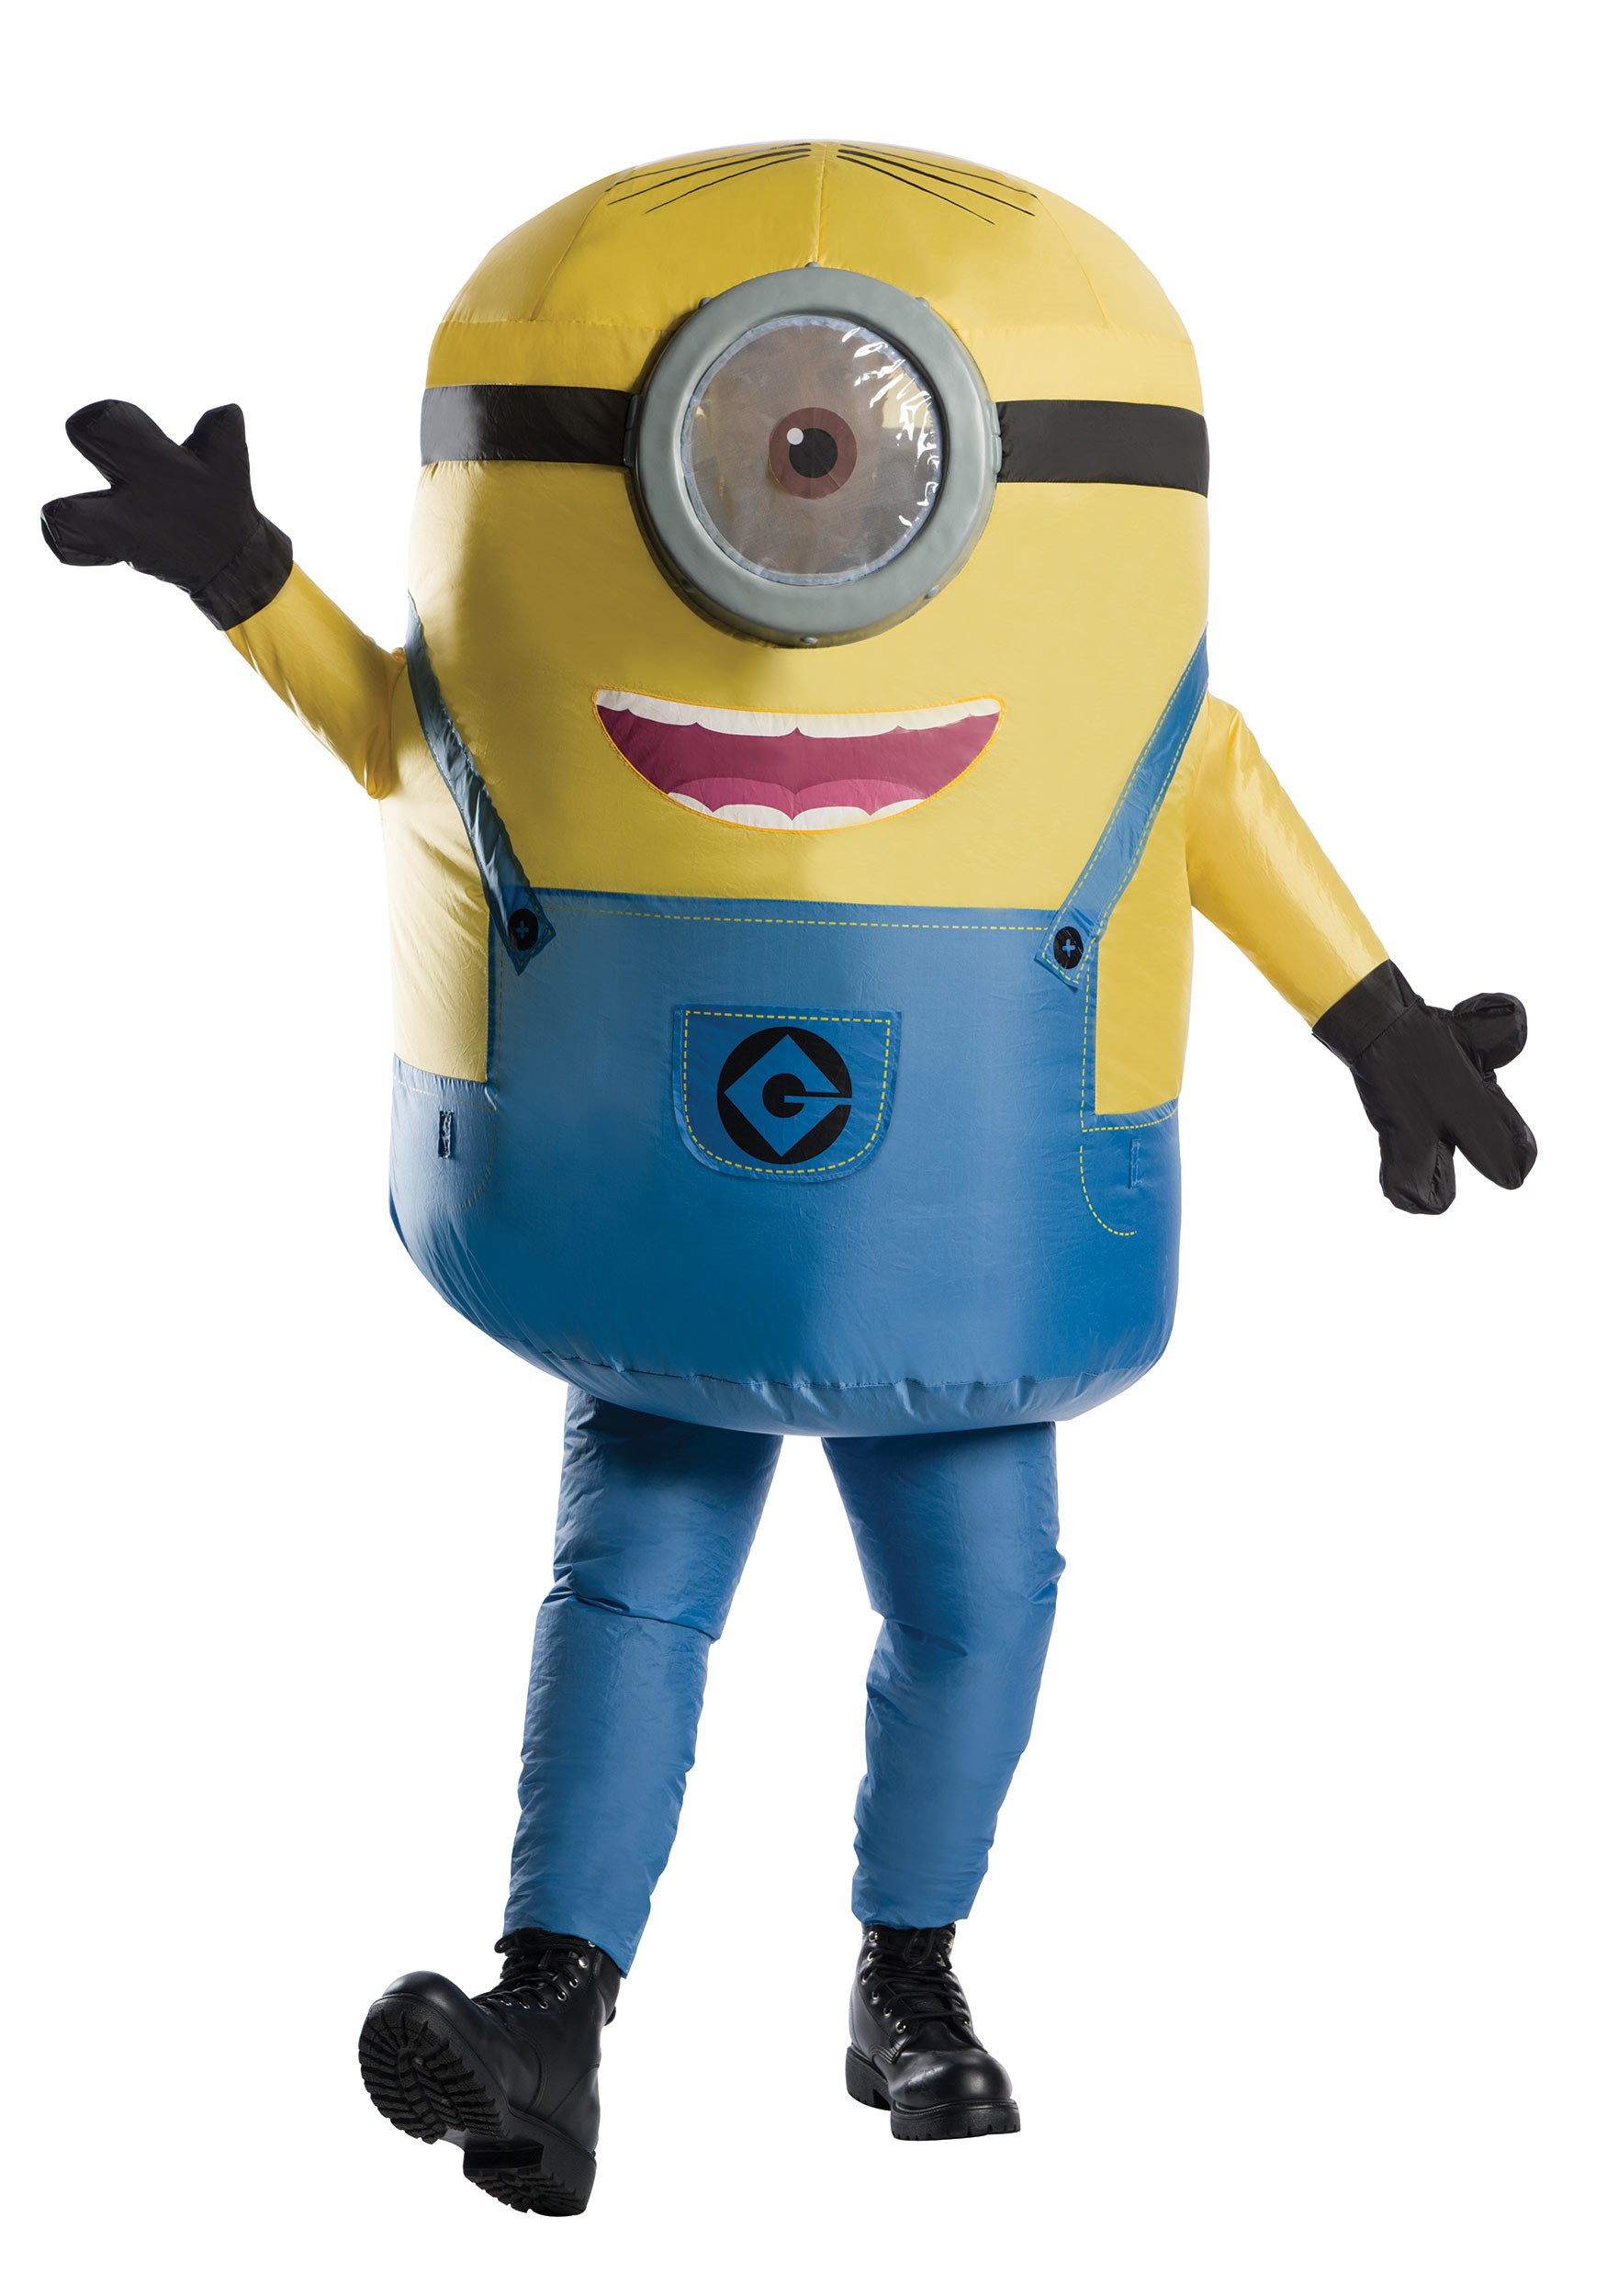 a570441a8d5 Despicable Me Minion Costumes - HalloweenCostumes.com